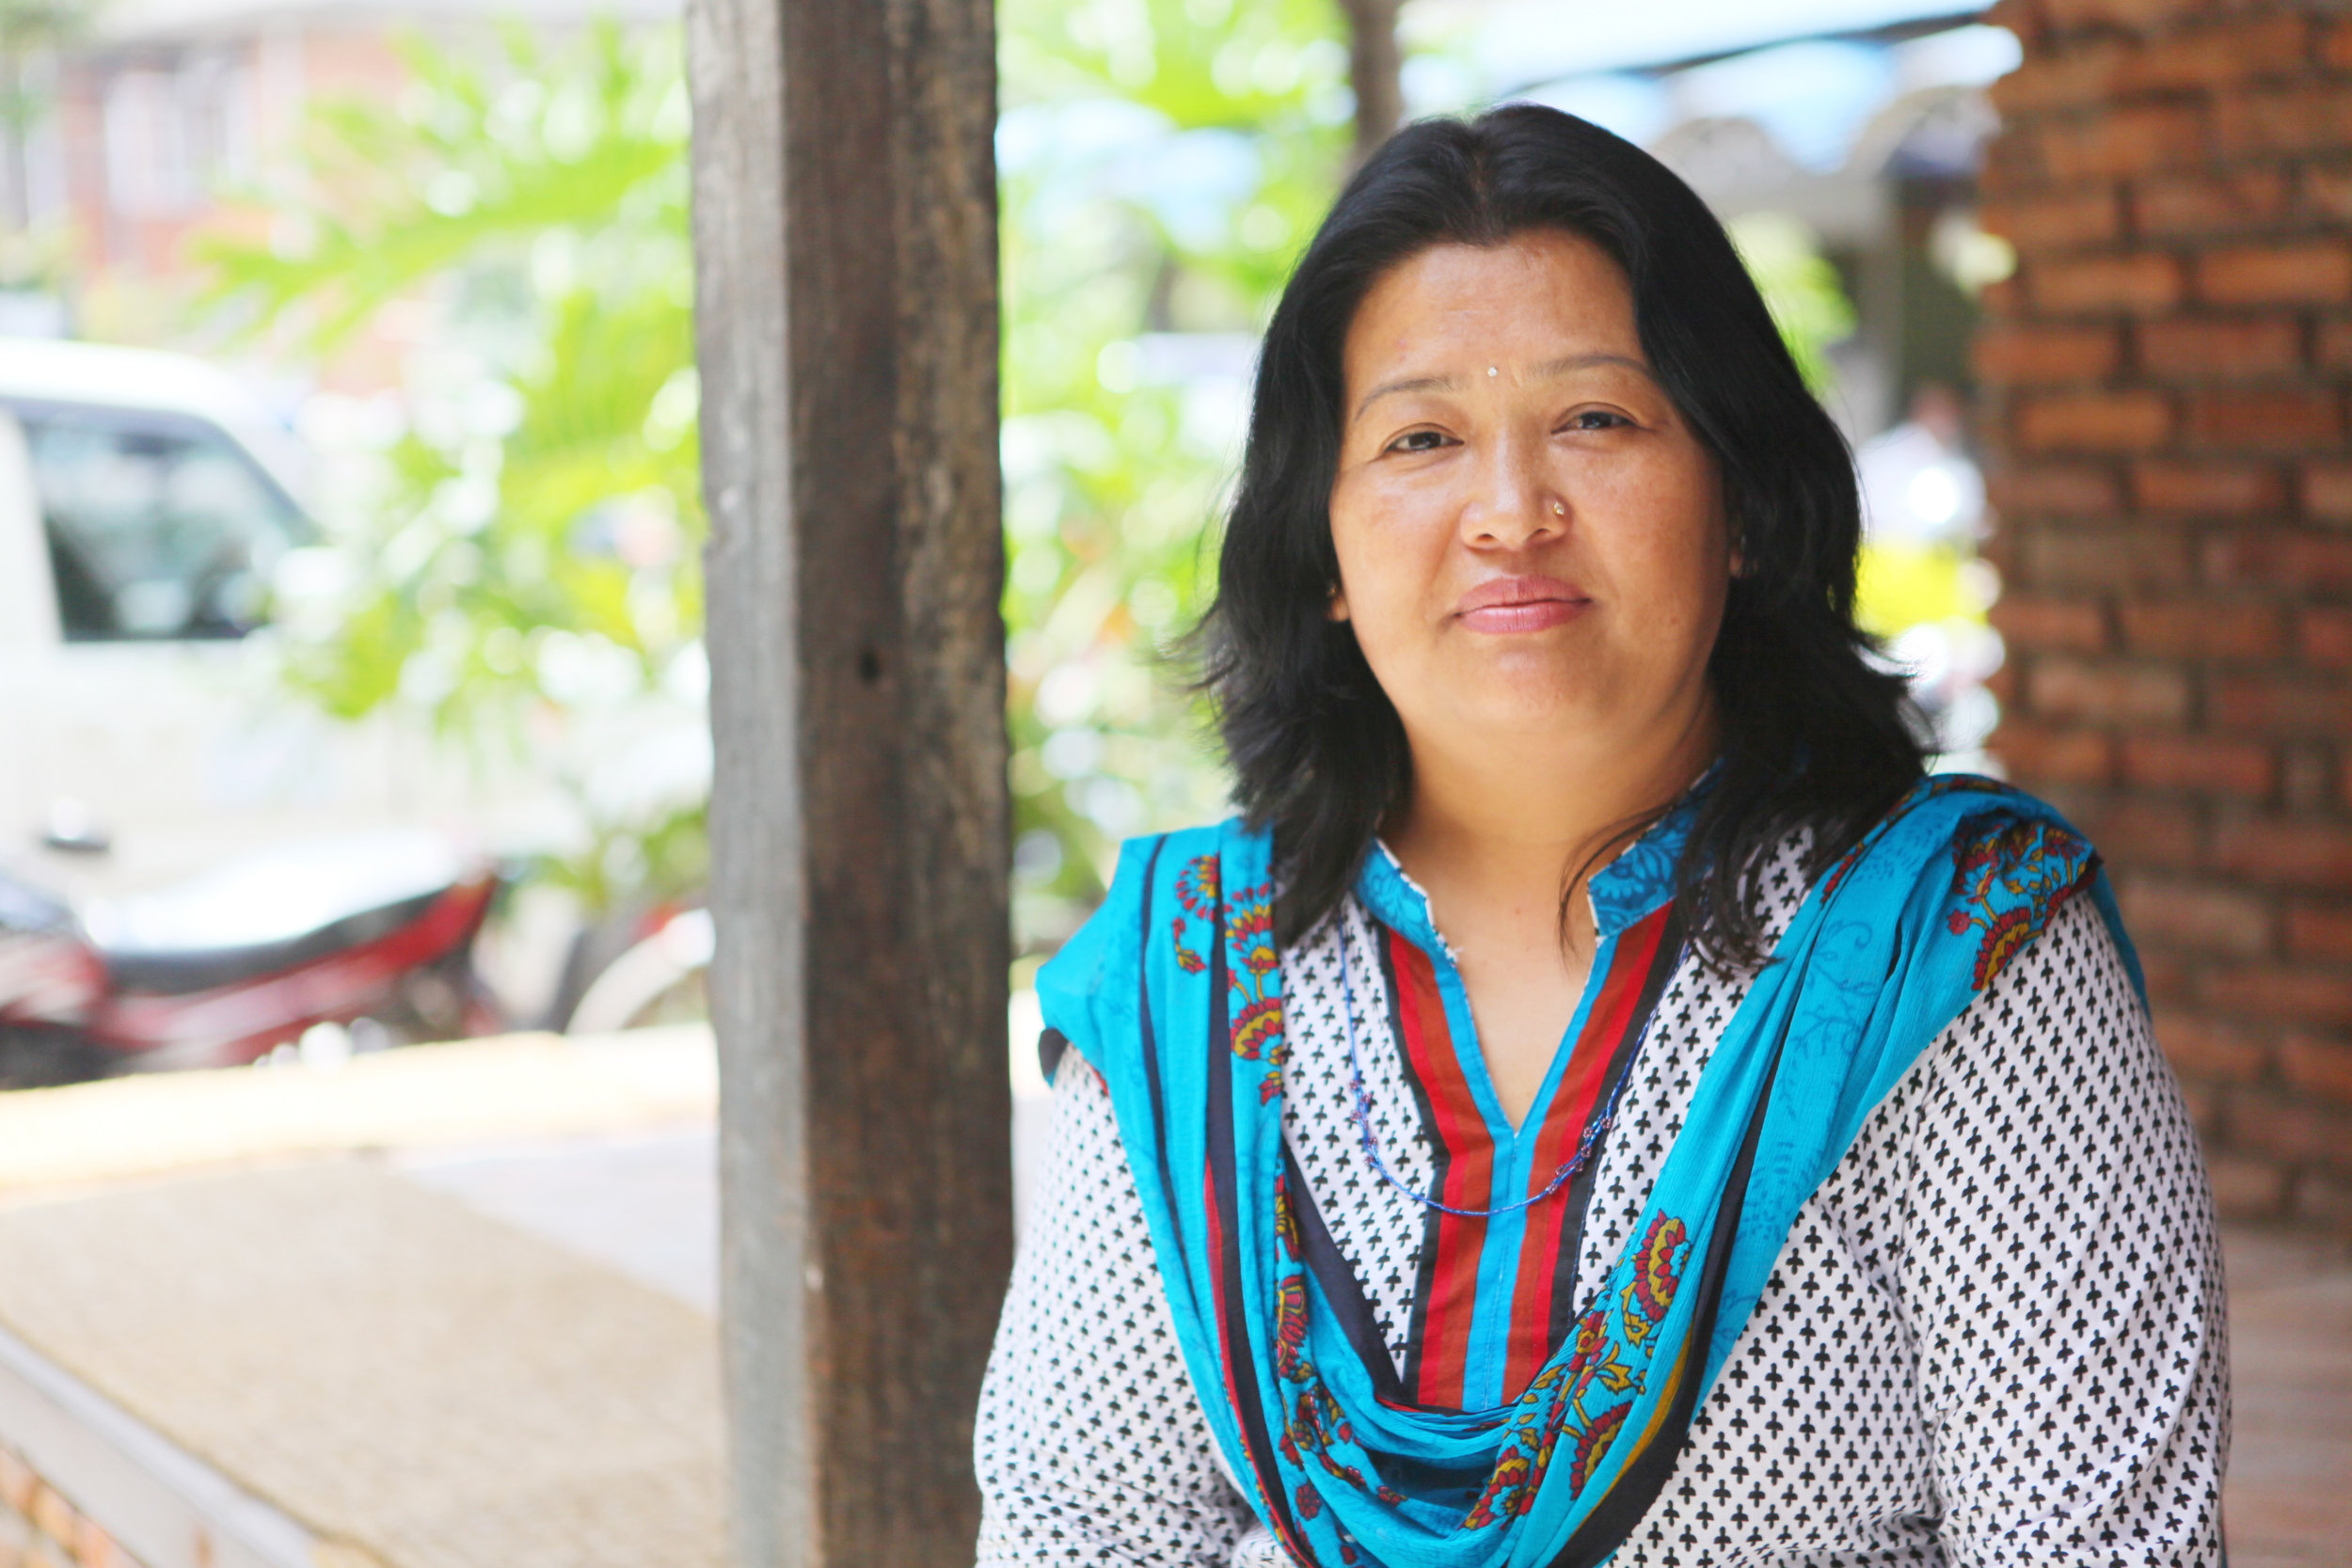 Ms. Shobha Basnet, Past Chair